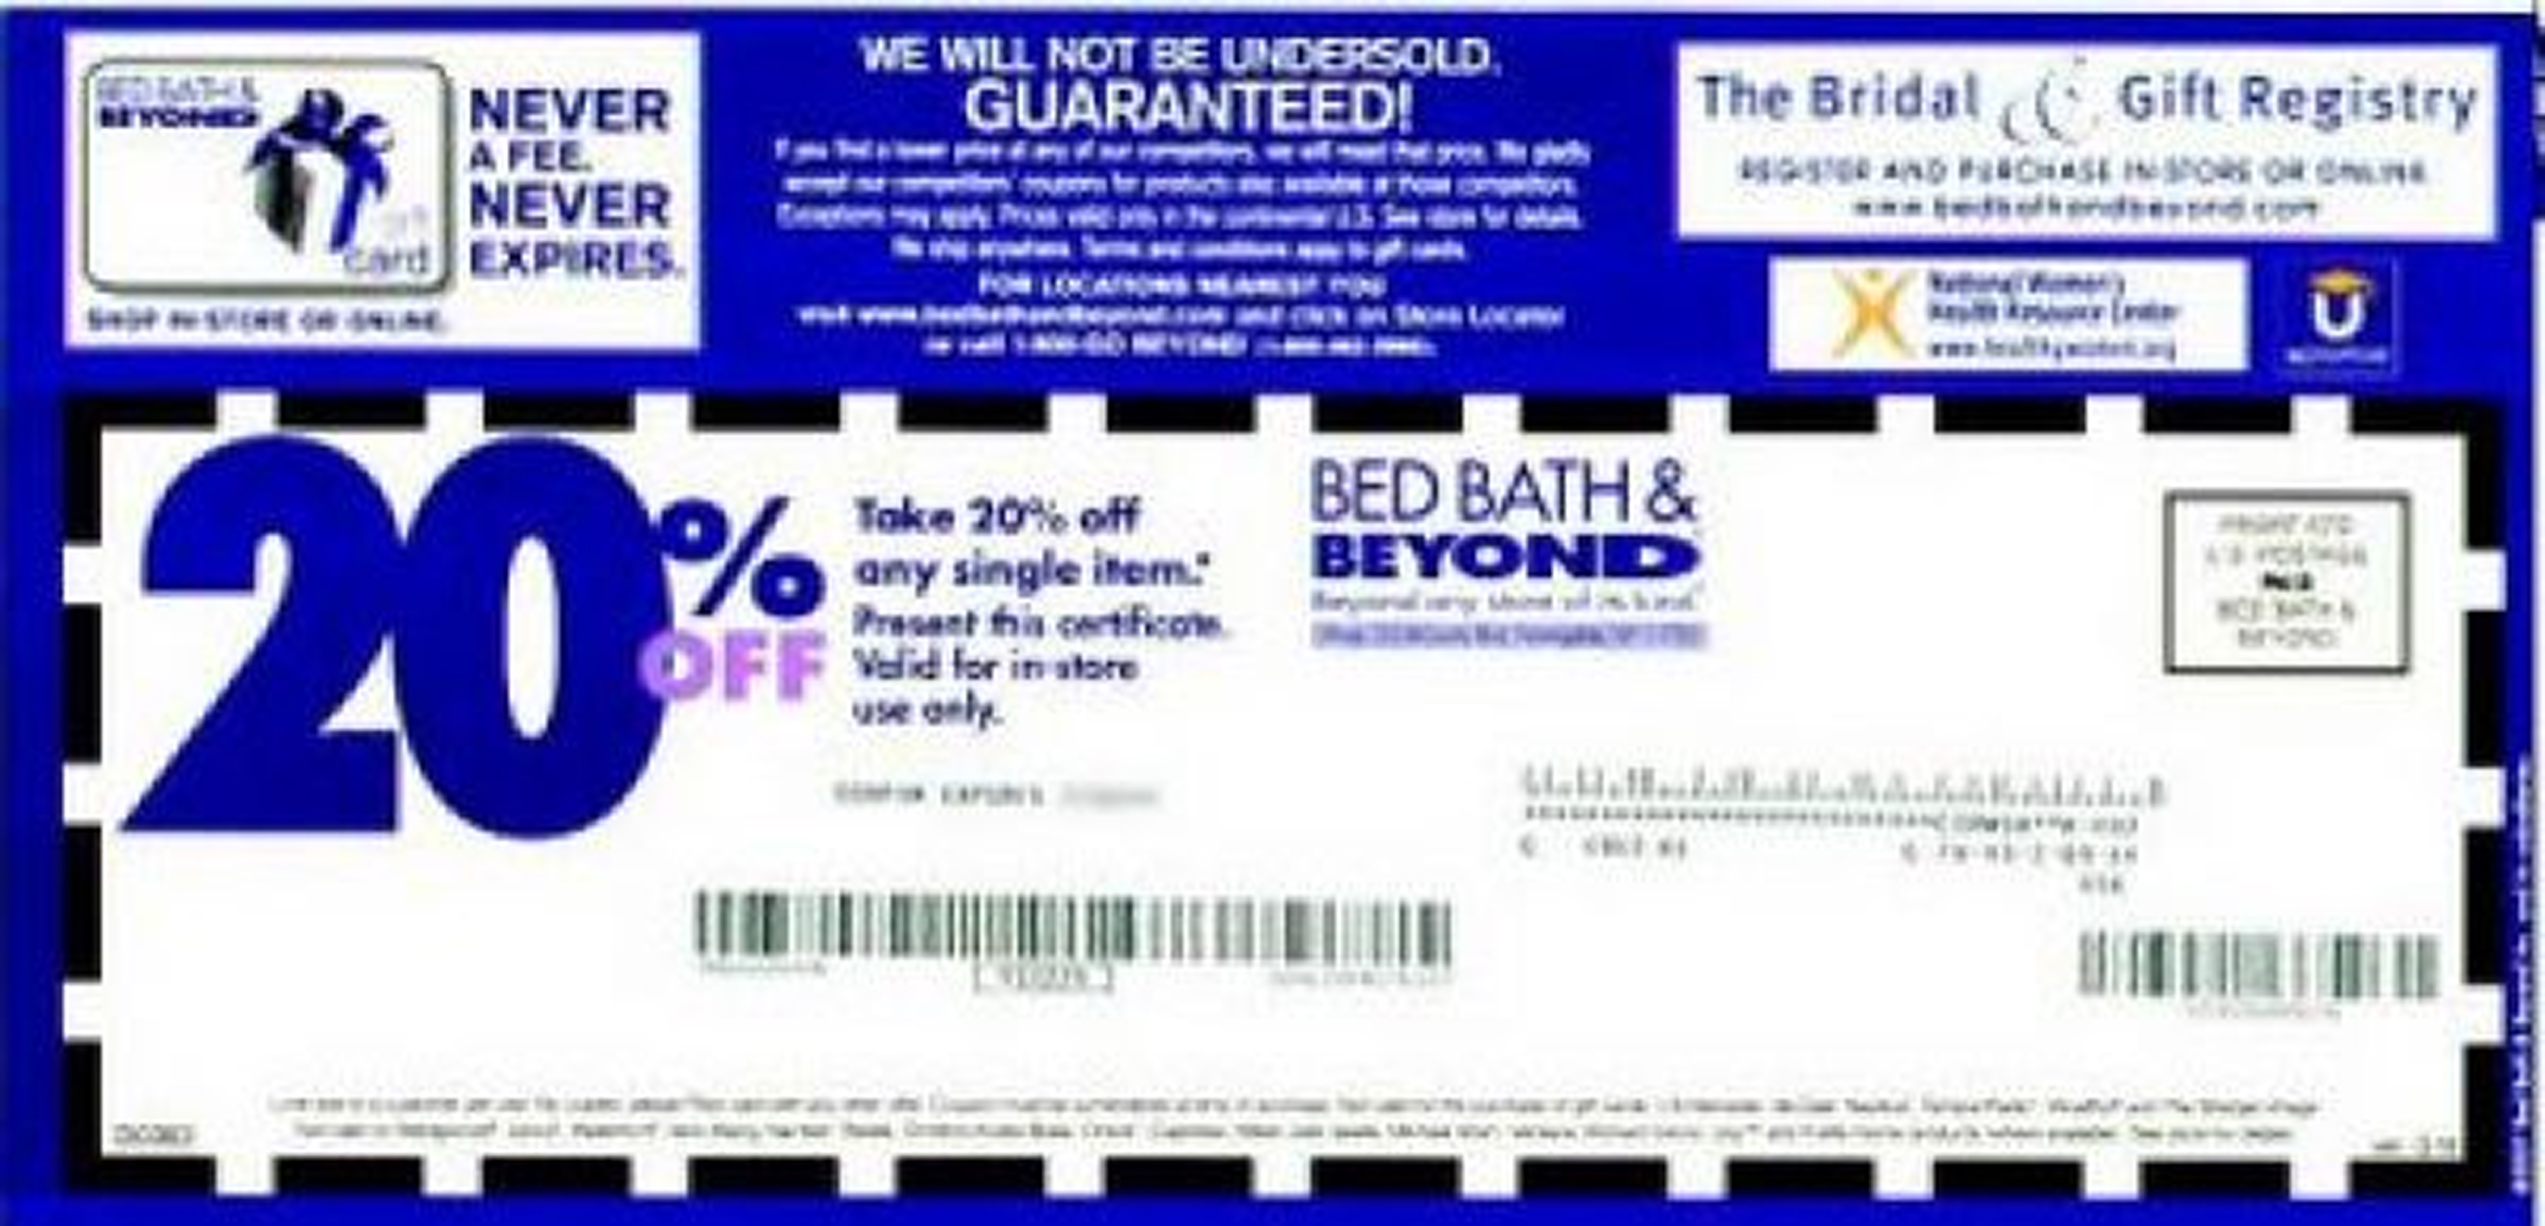 Off   Bed Bath Beyond Coupon